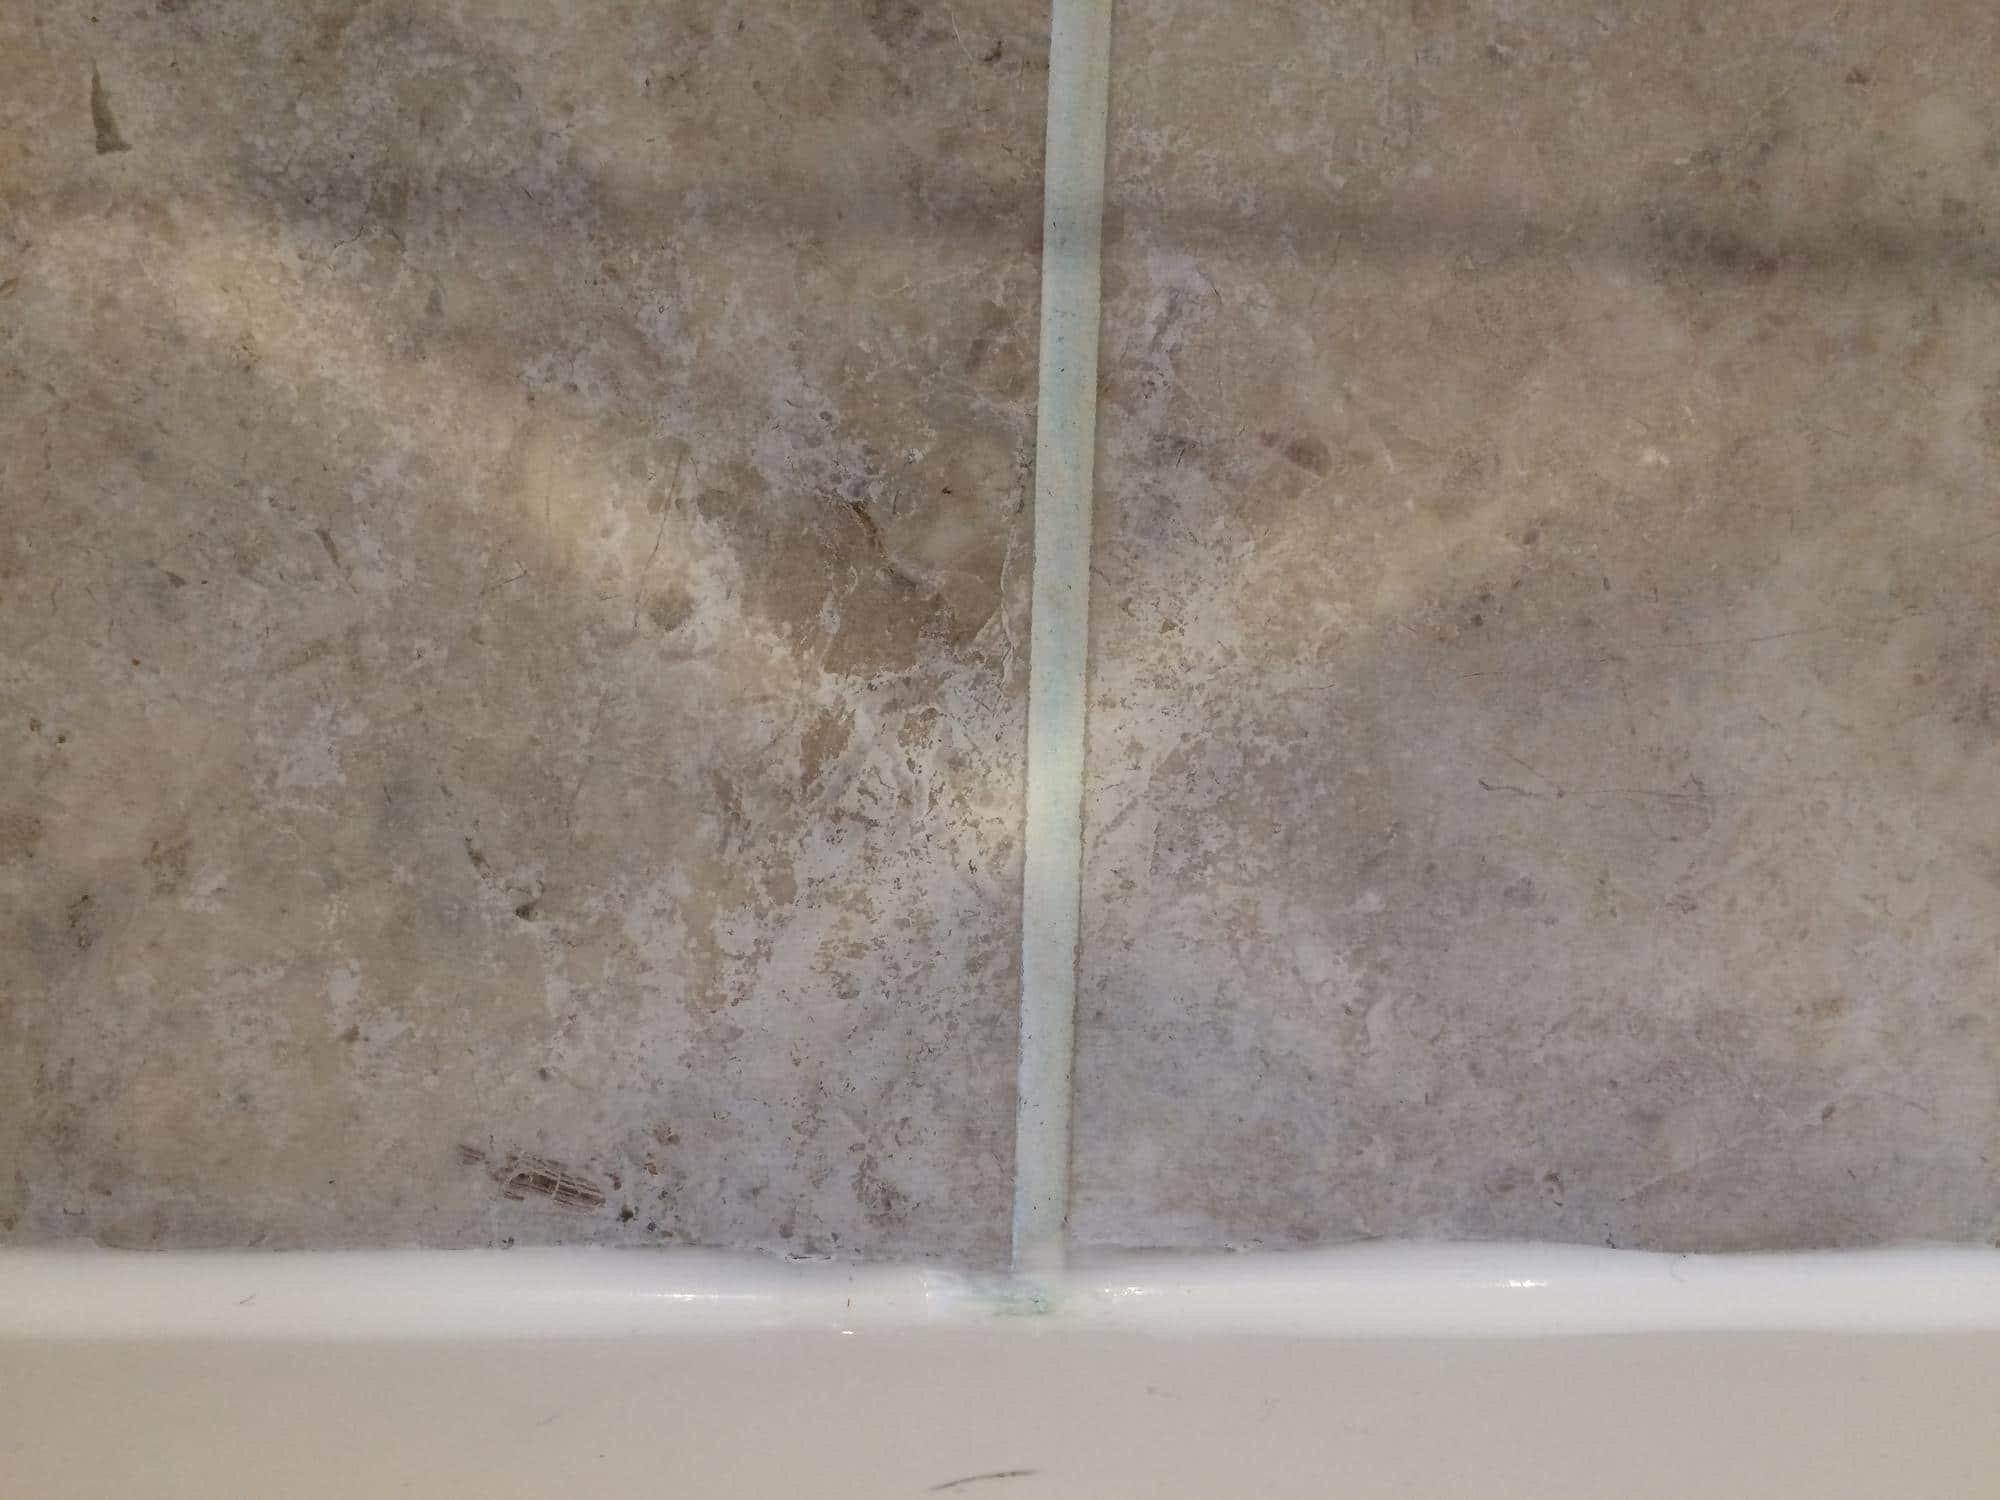 bathroom wall tile stain removal bespoke repairs